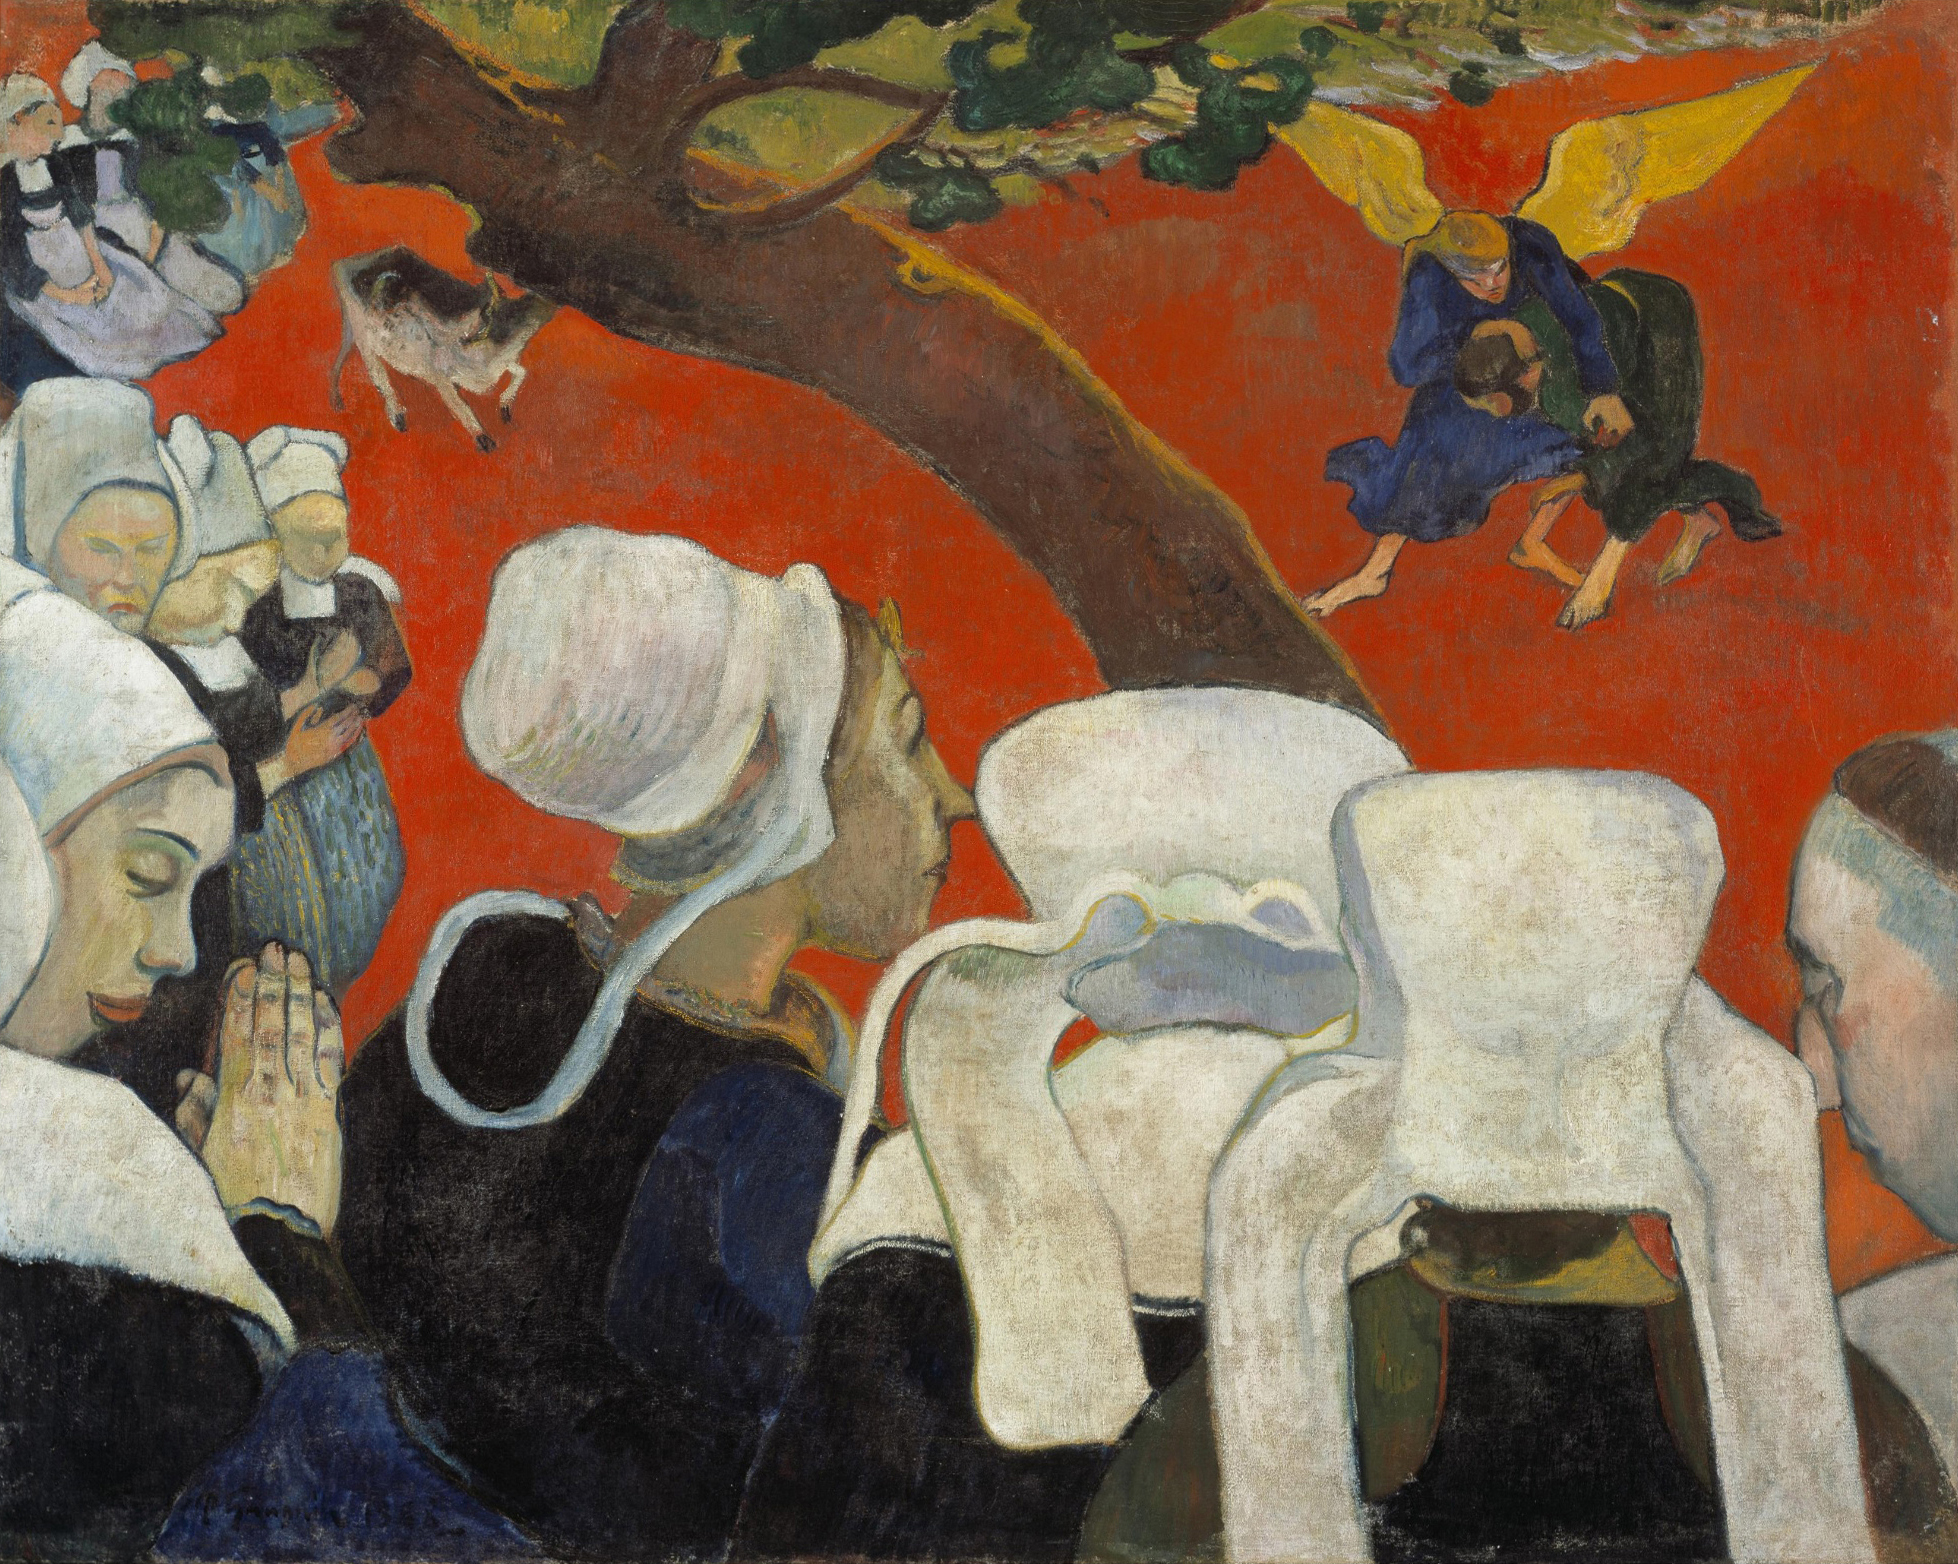 Gauguin, P. (1888). Vision after the Sermon. National Galleries of Scotland.